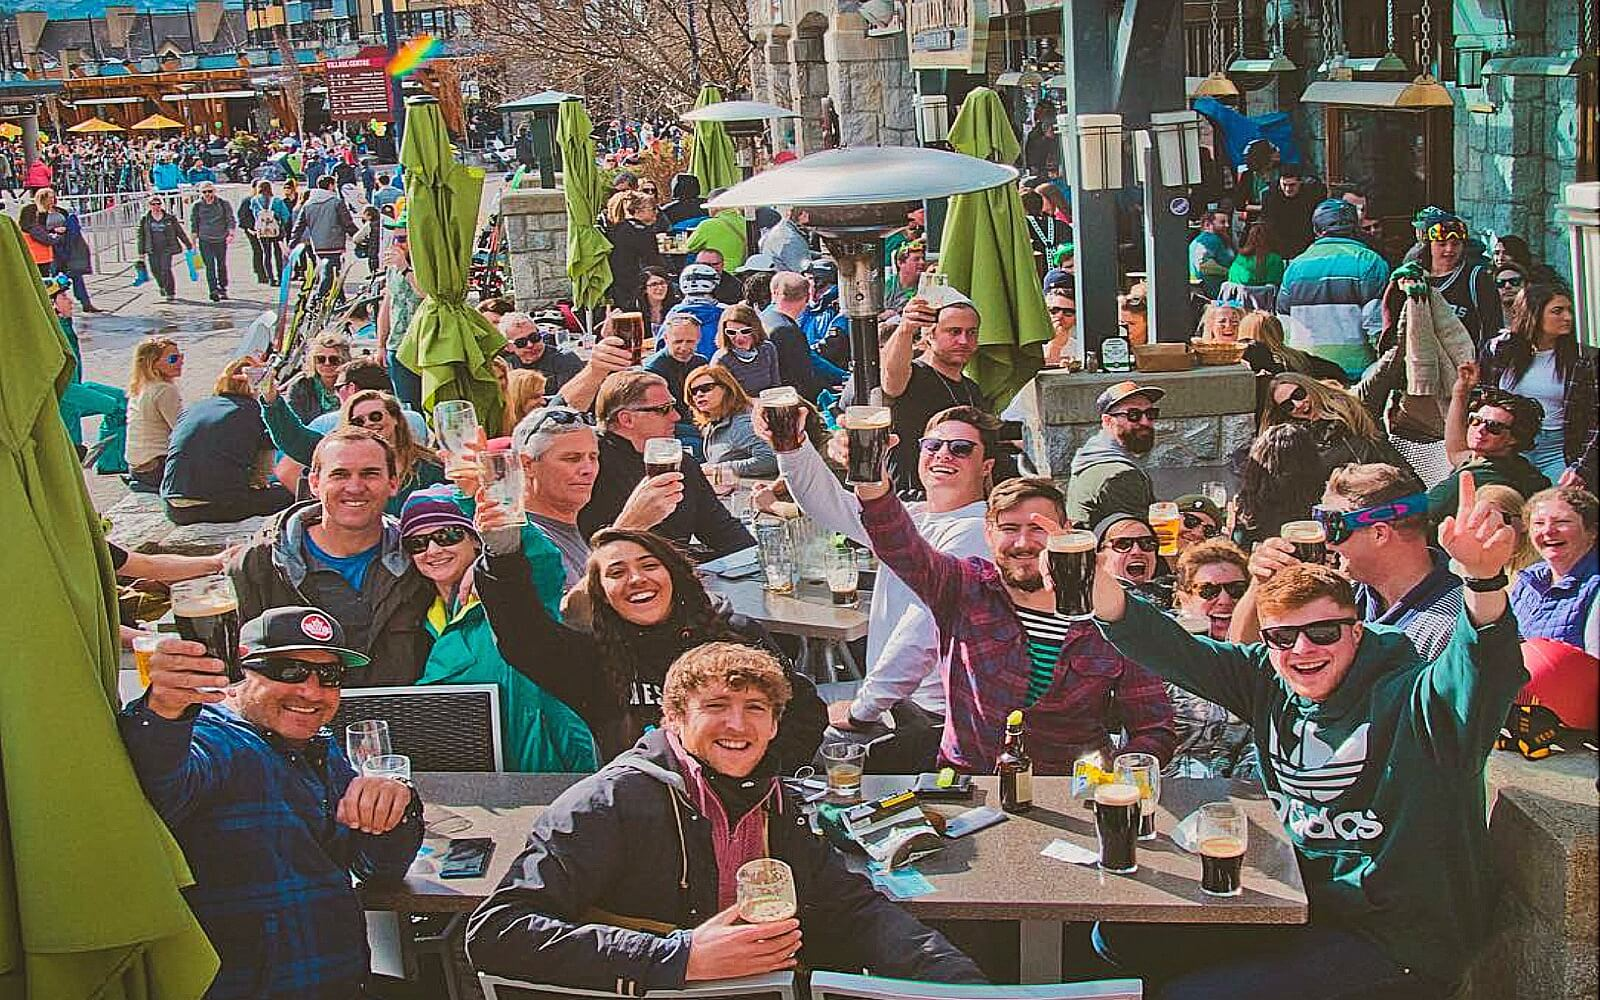 A crowd drinks on the patio at Dubh Linn Gate, Whistler